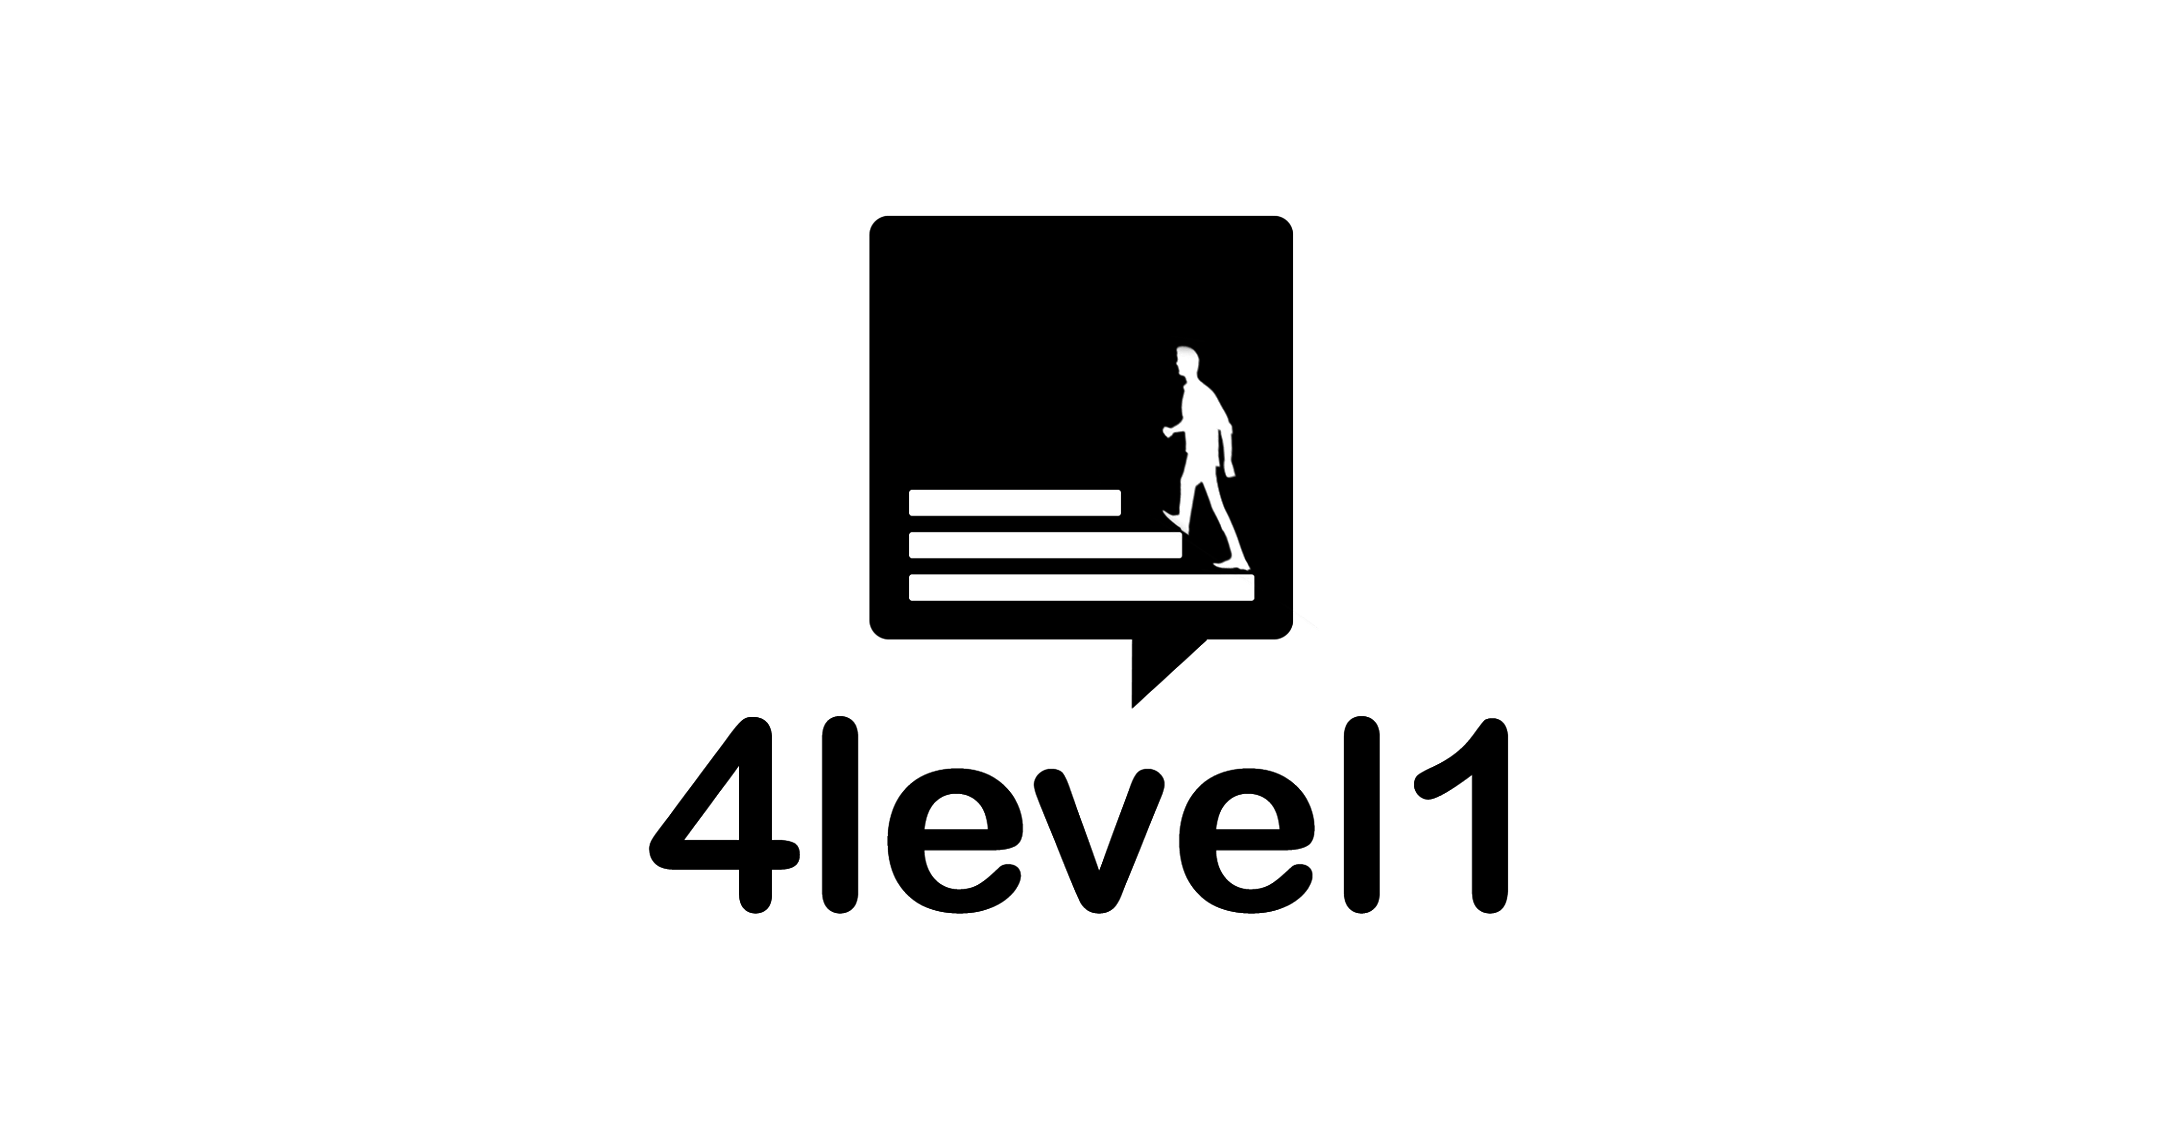 صورة Job: Senior Digital Media Buyer at 4level1 in Cairo, Egypt